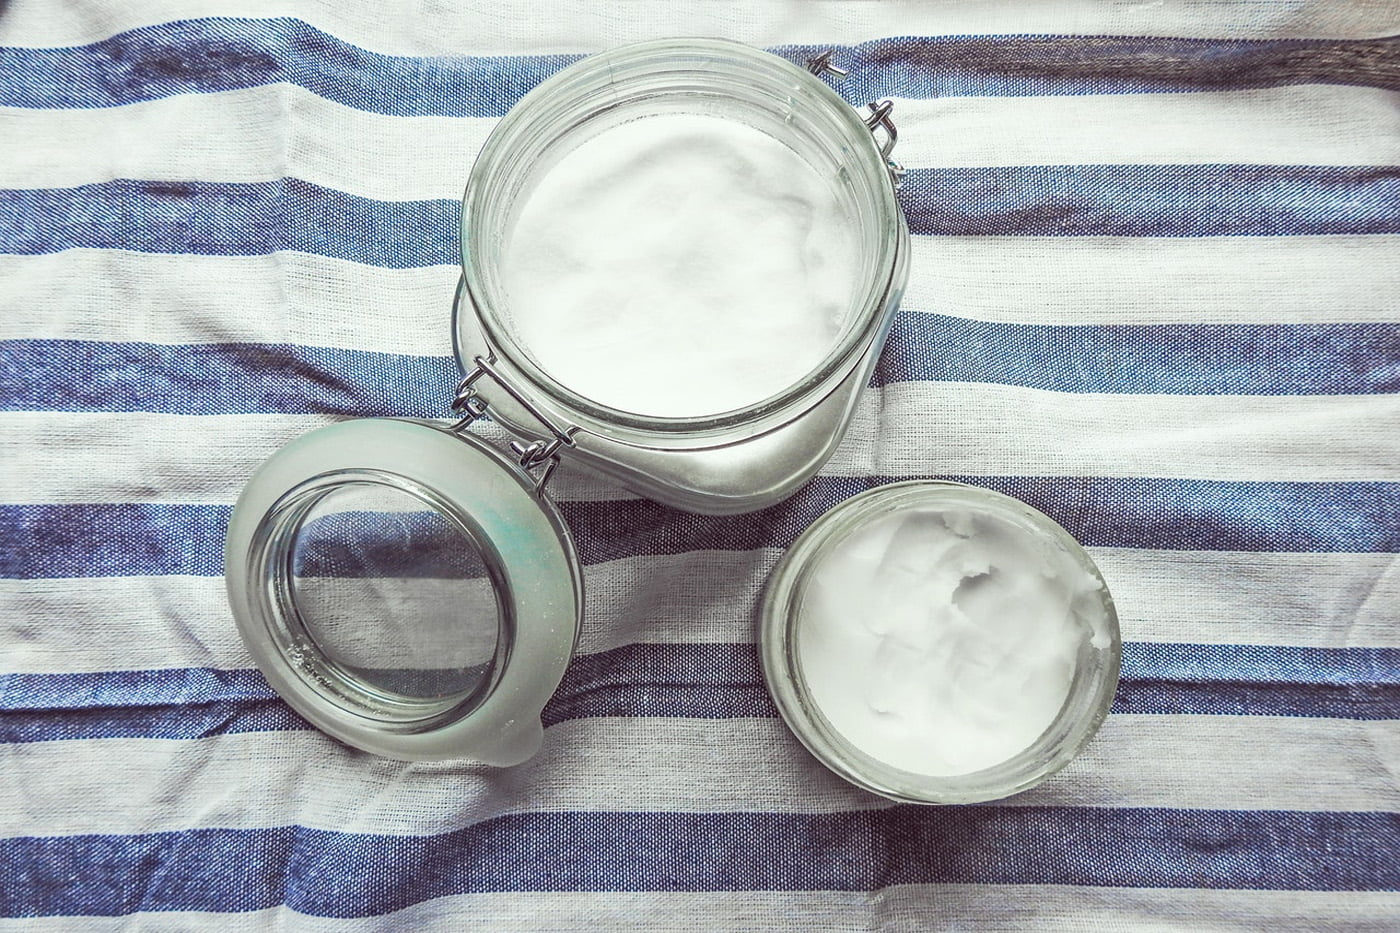 Coconut Oil Might Actually Be Pretty Bad For You